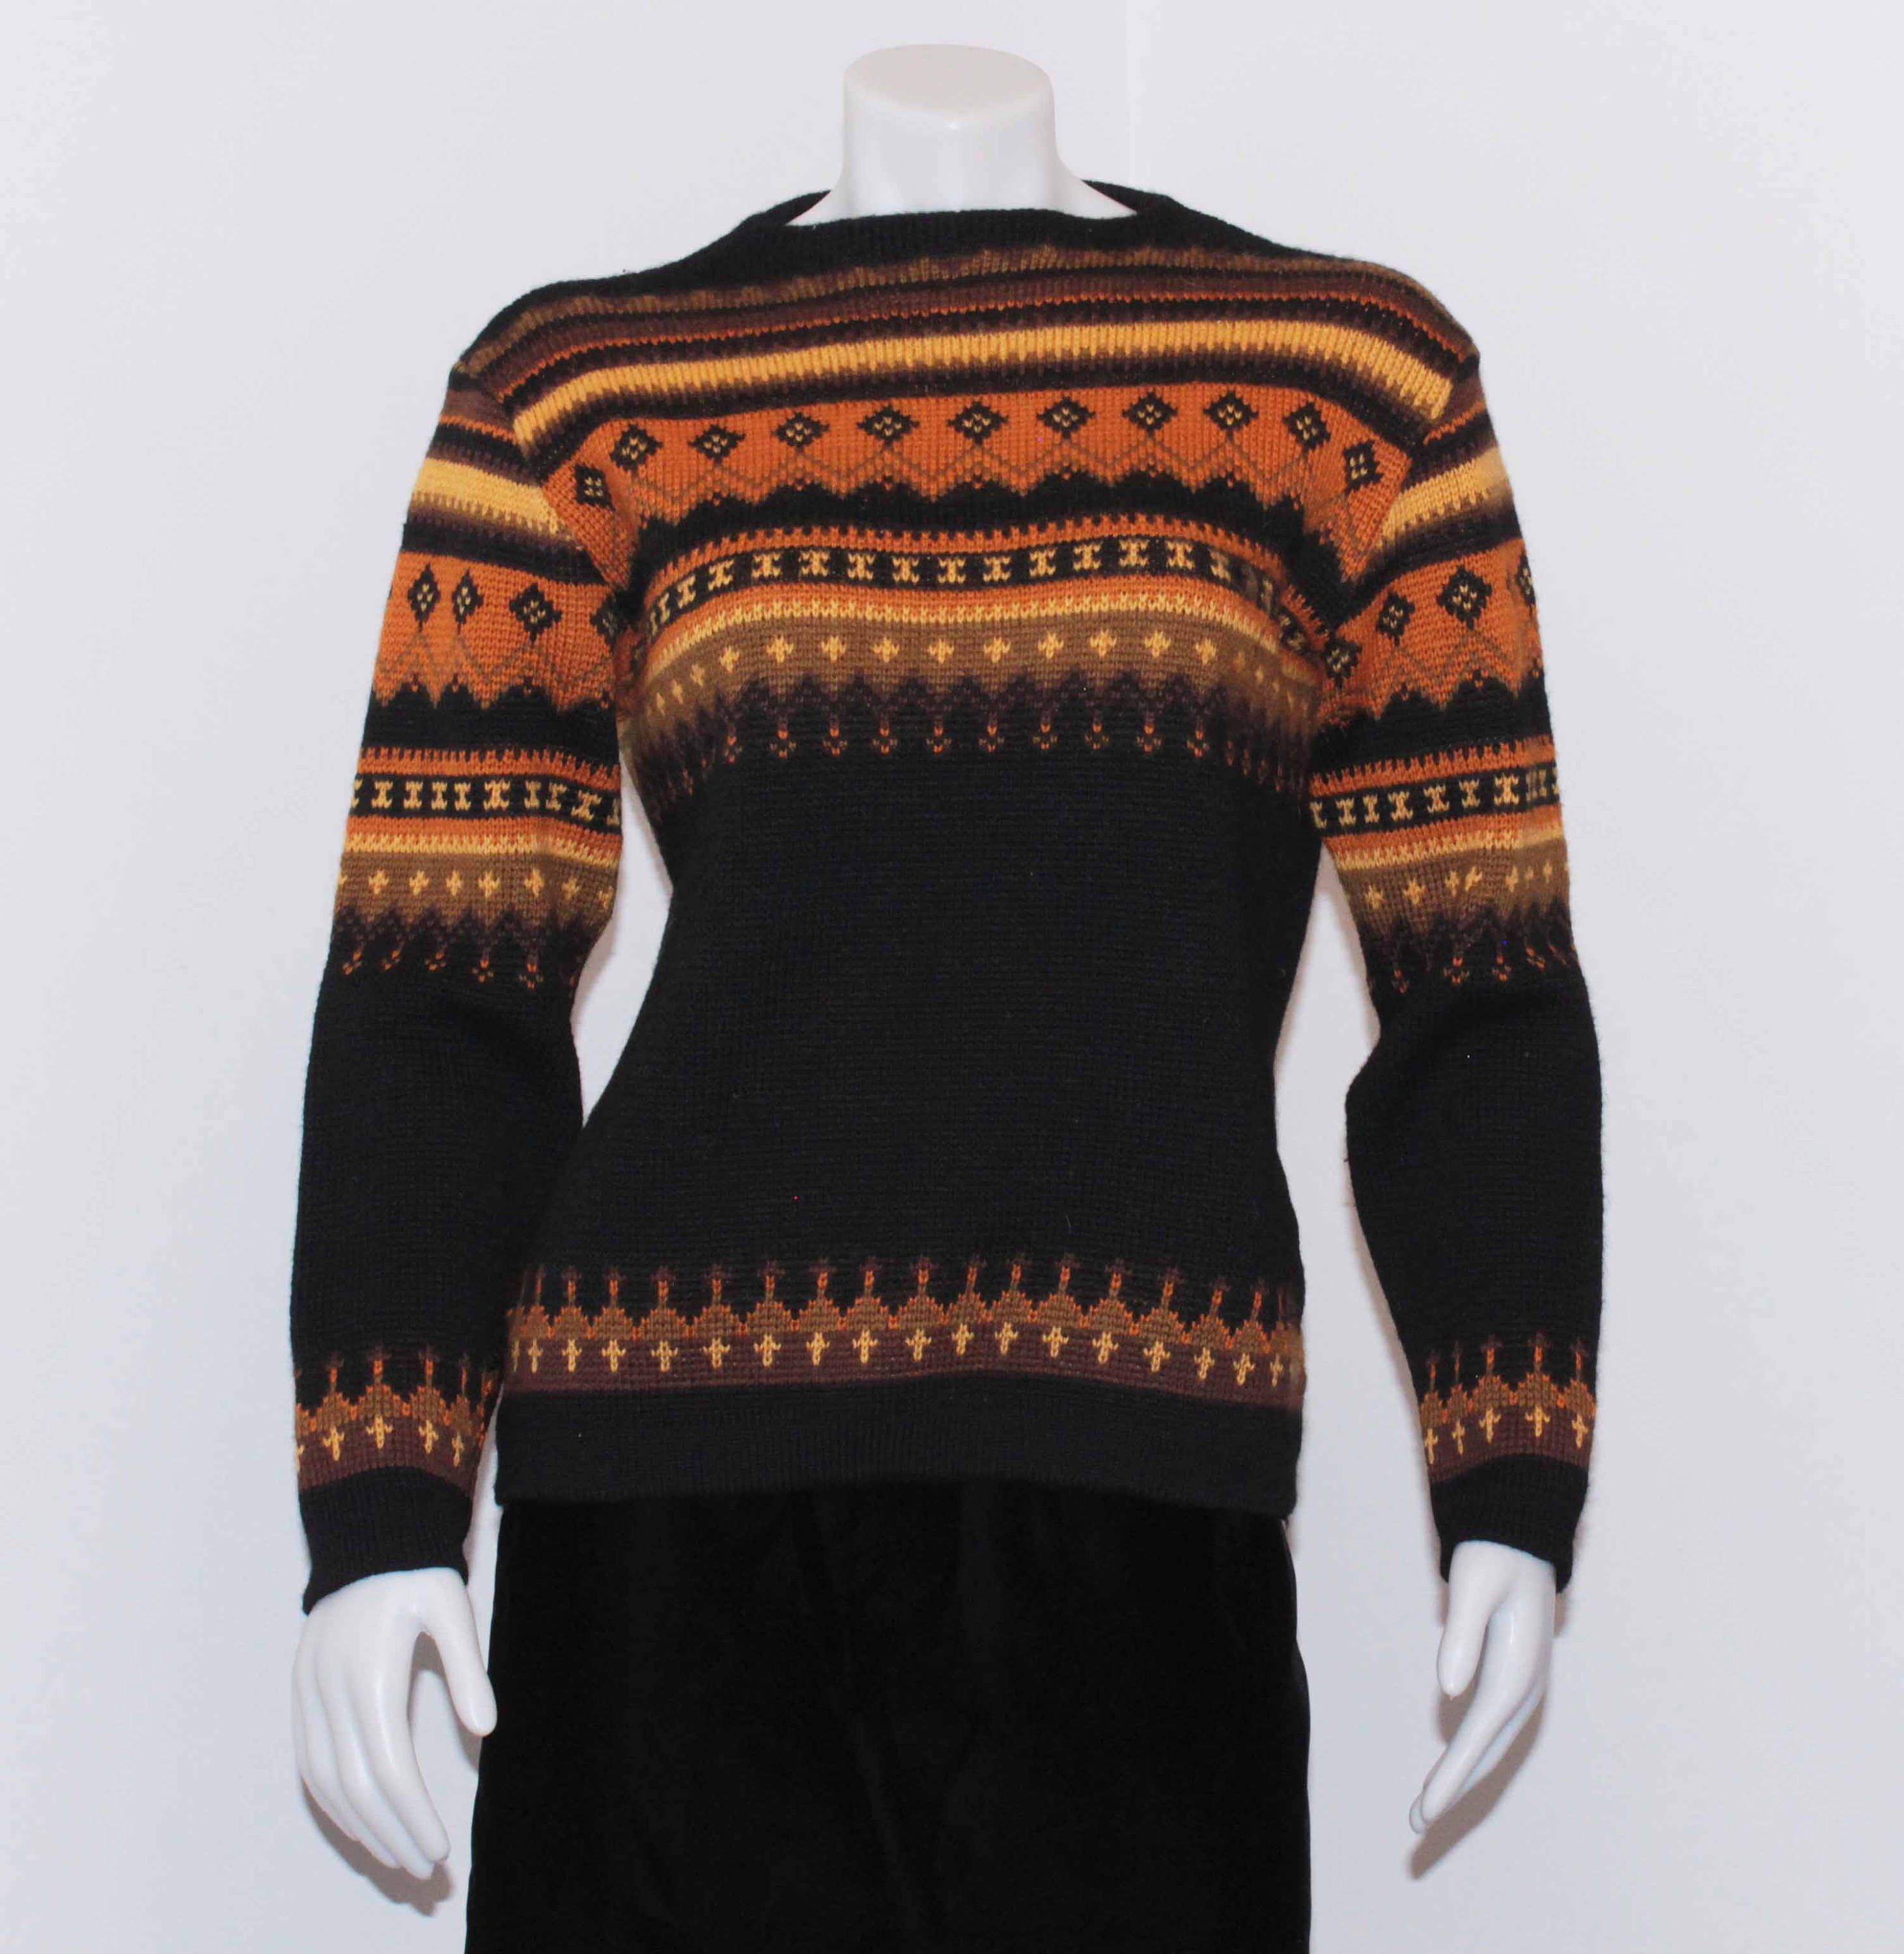 Vintage Norvik 100 Wool Ski Sweater, shipping included